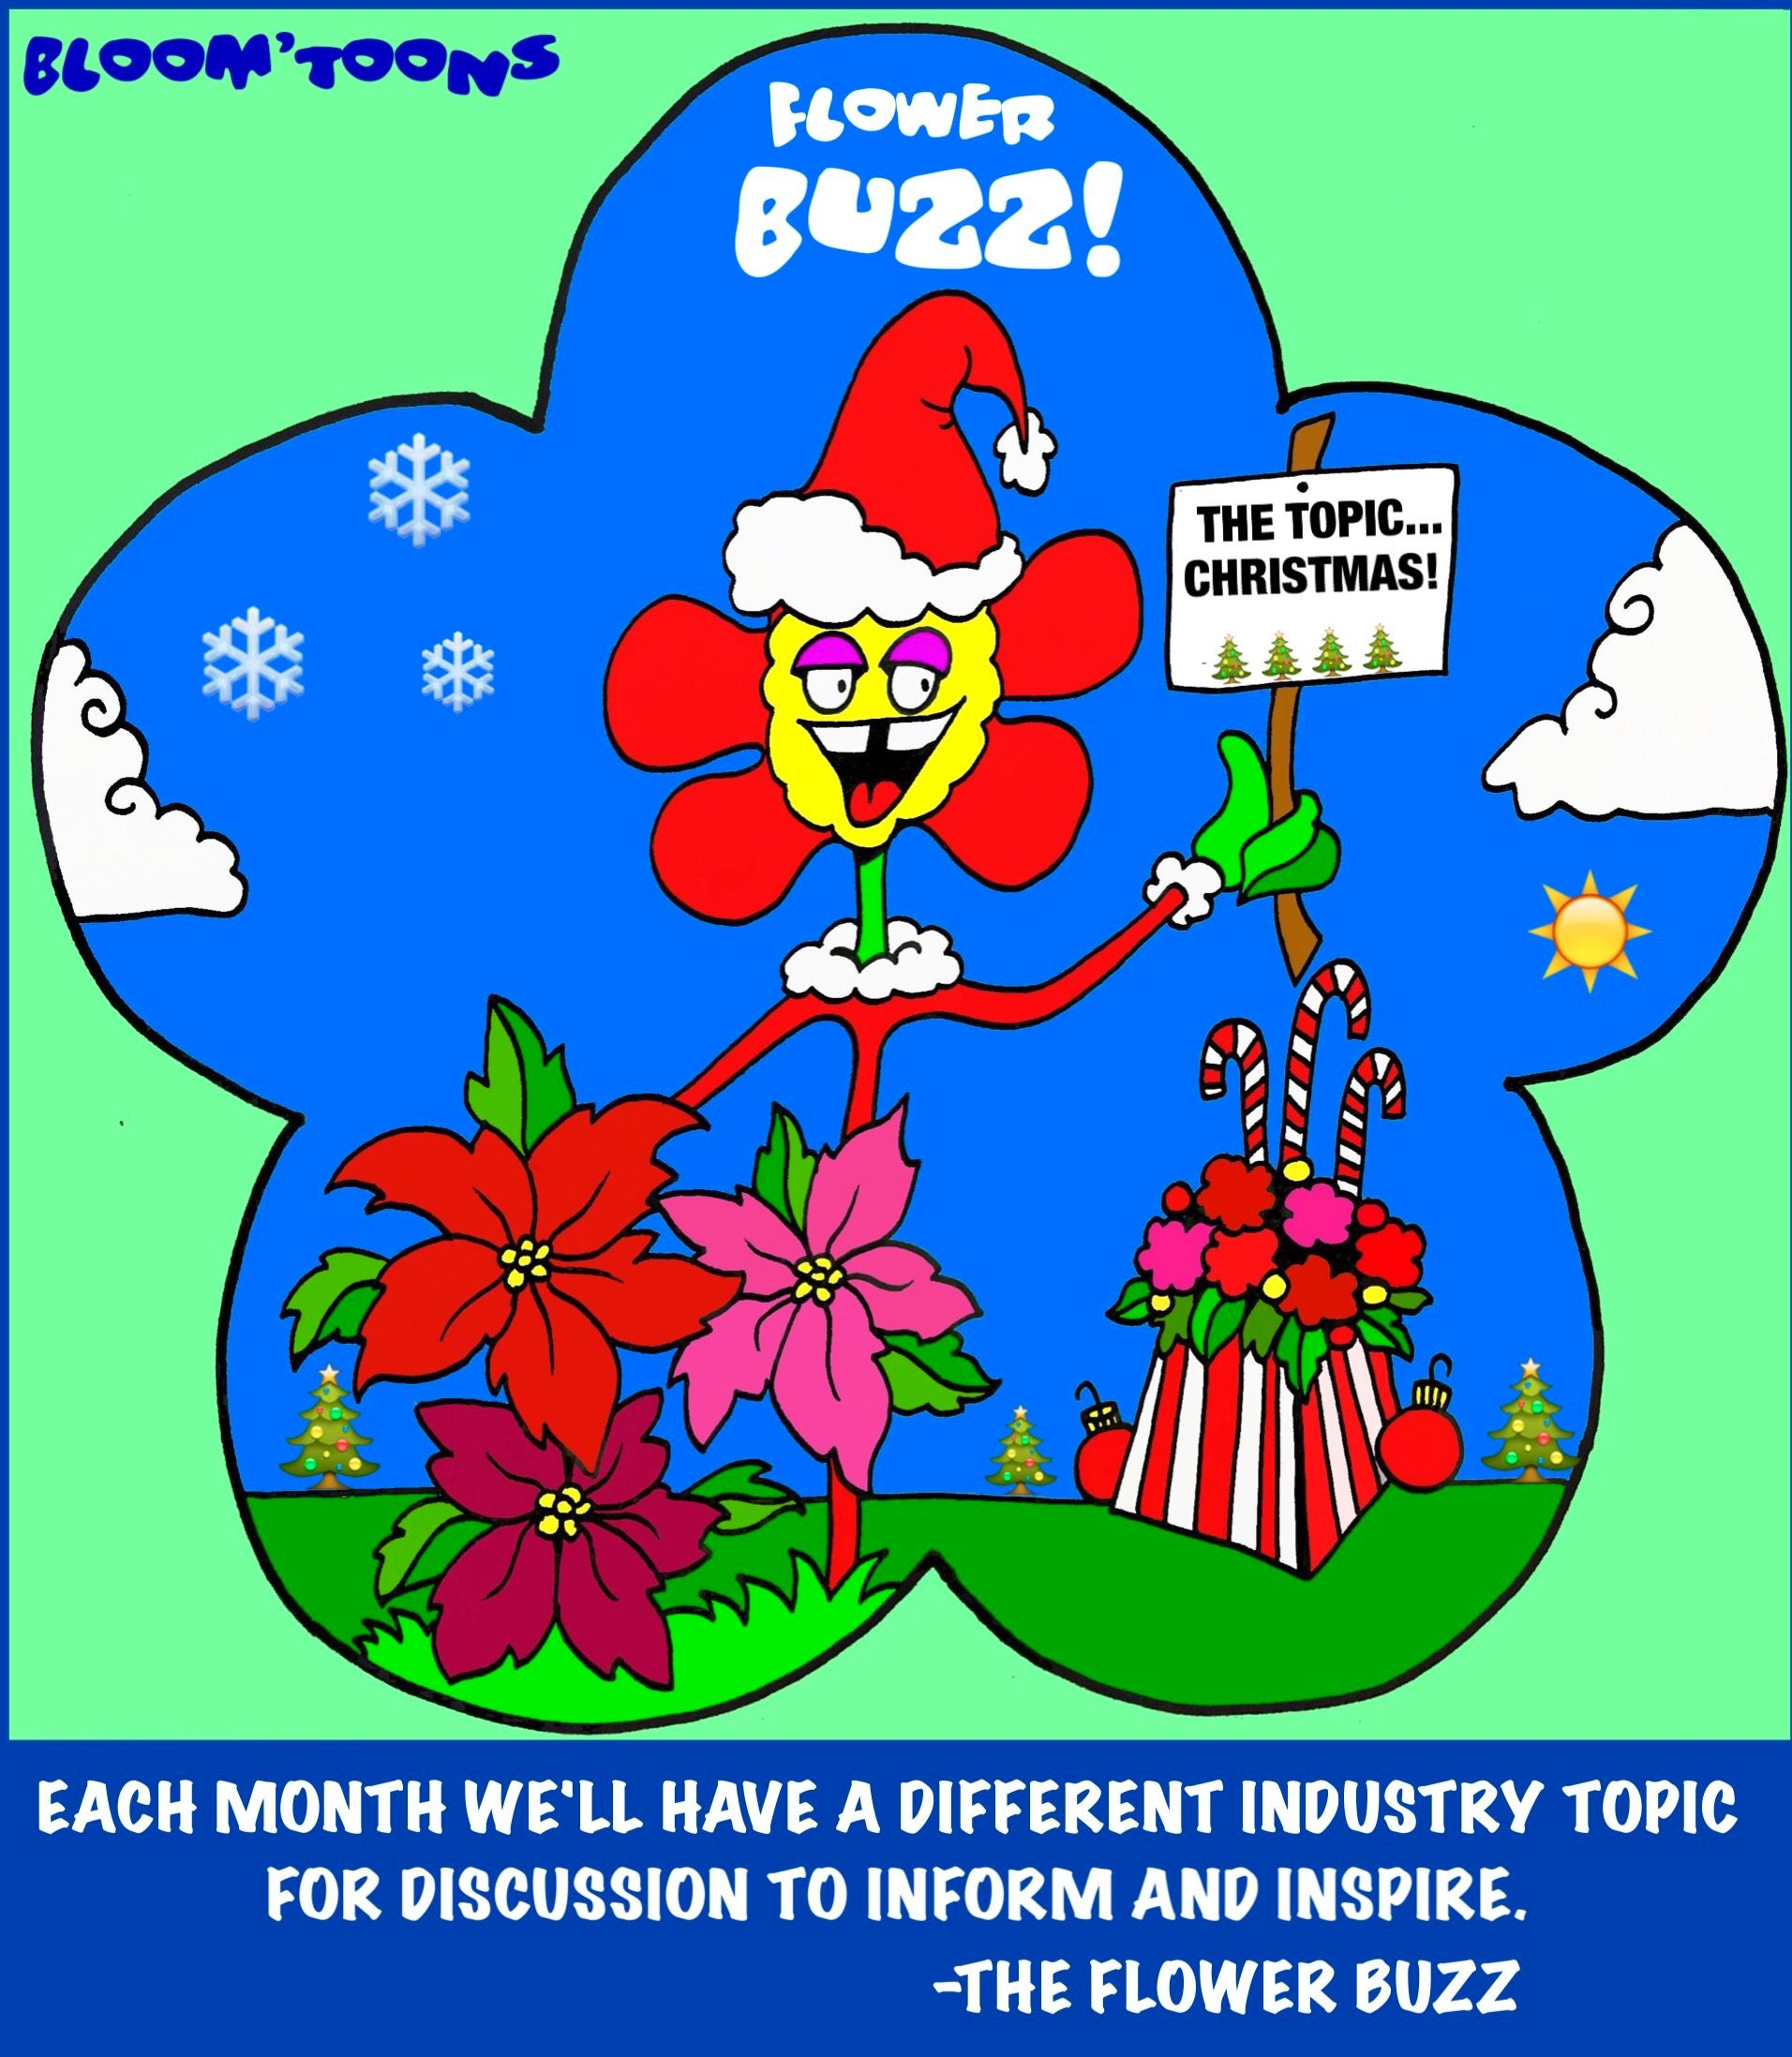 Pin by Brian Wheat on BLOOM'toons Bloom, Flowers, Comic